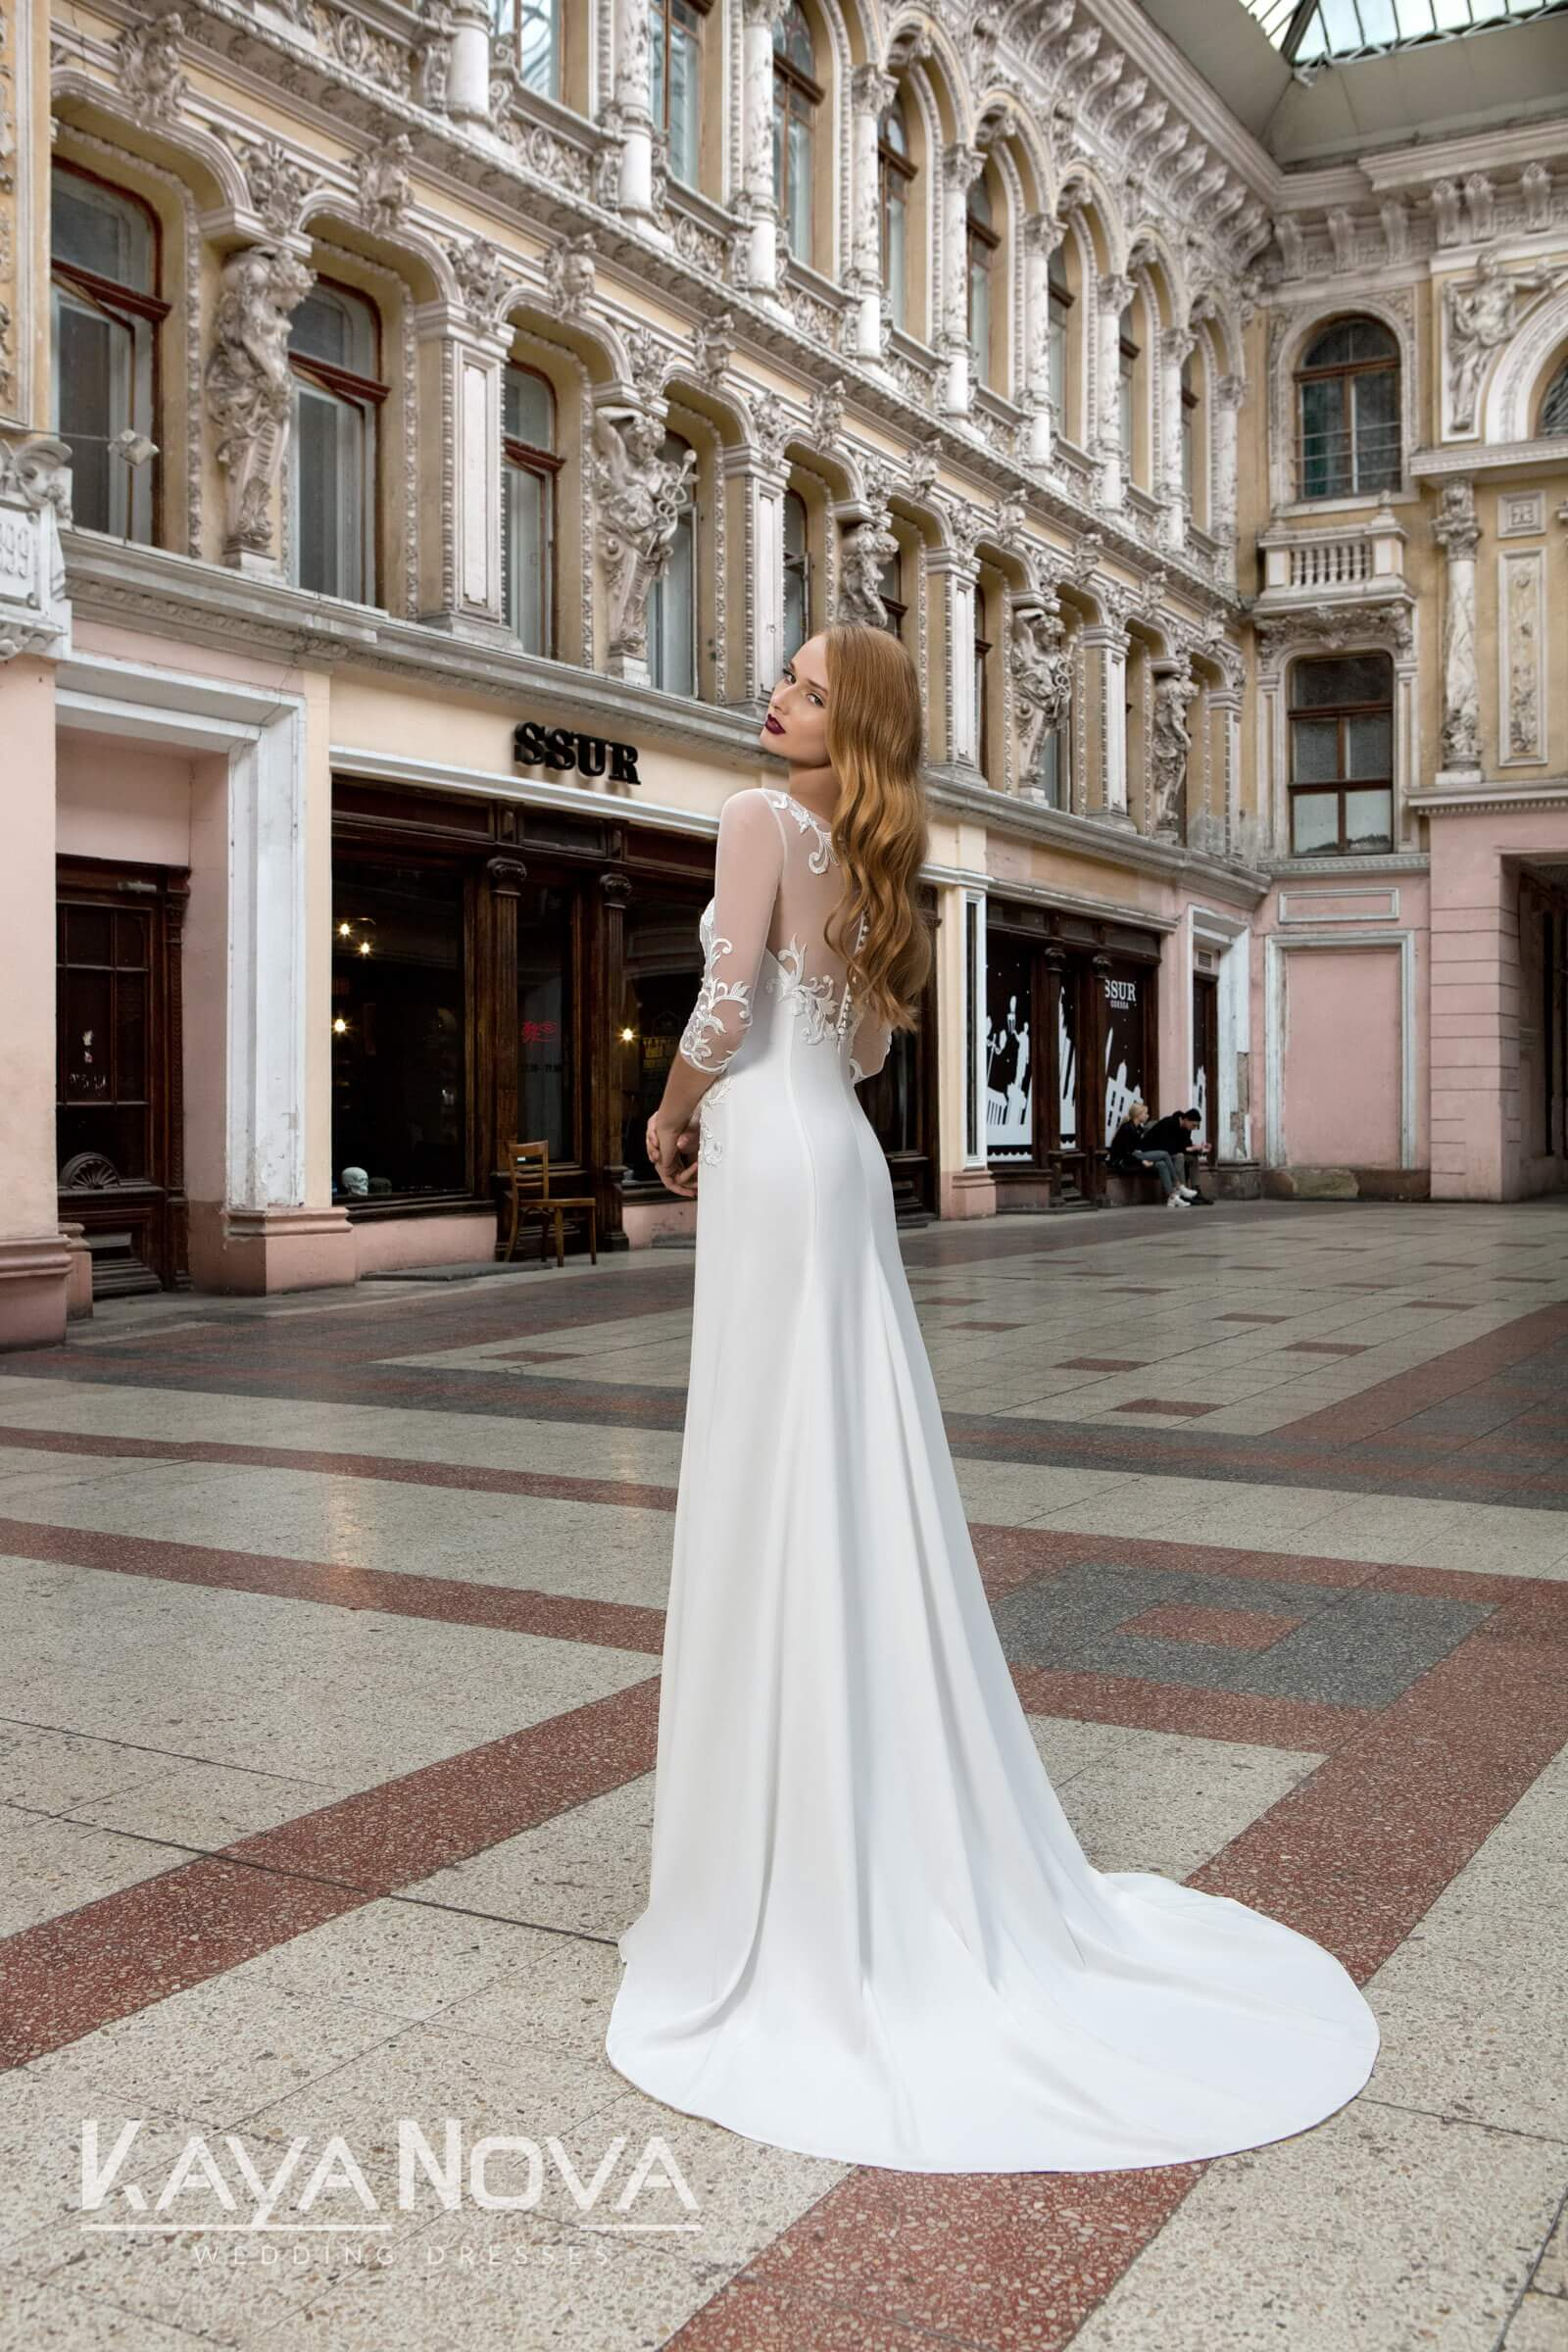 https://kayawedding.com/images/stories/virtuemart/product/Anetta 2 (1)8.jpg